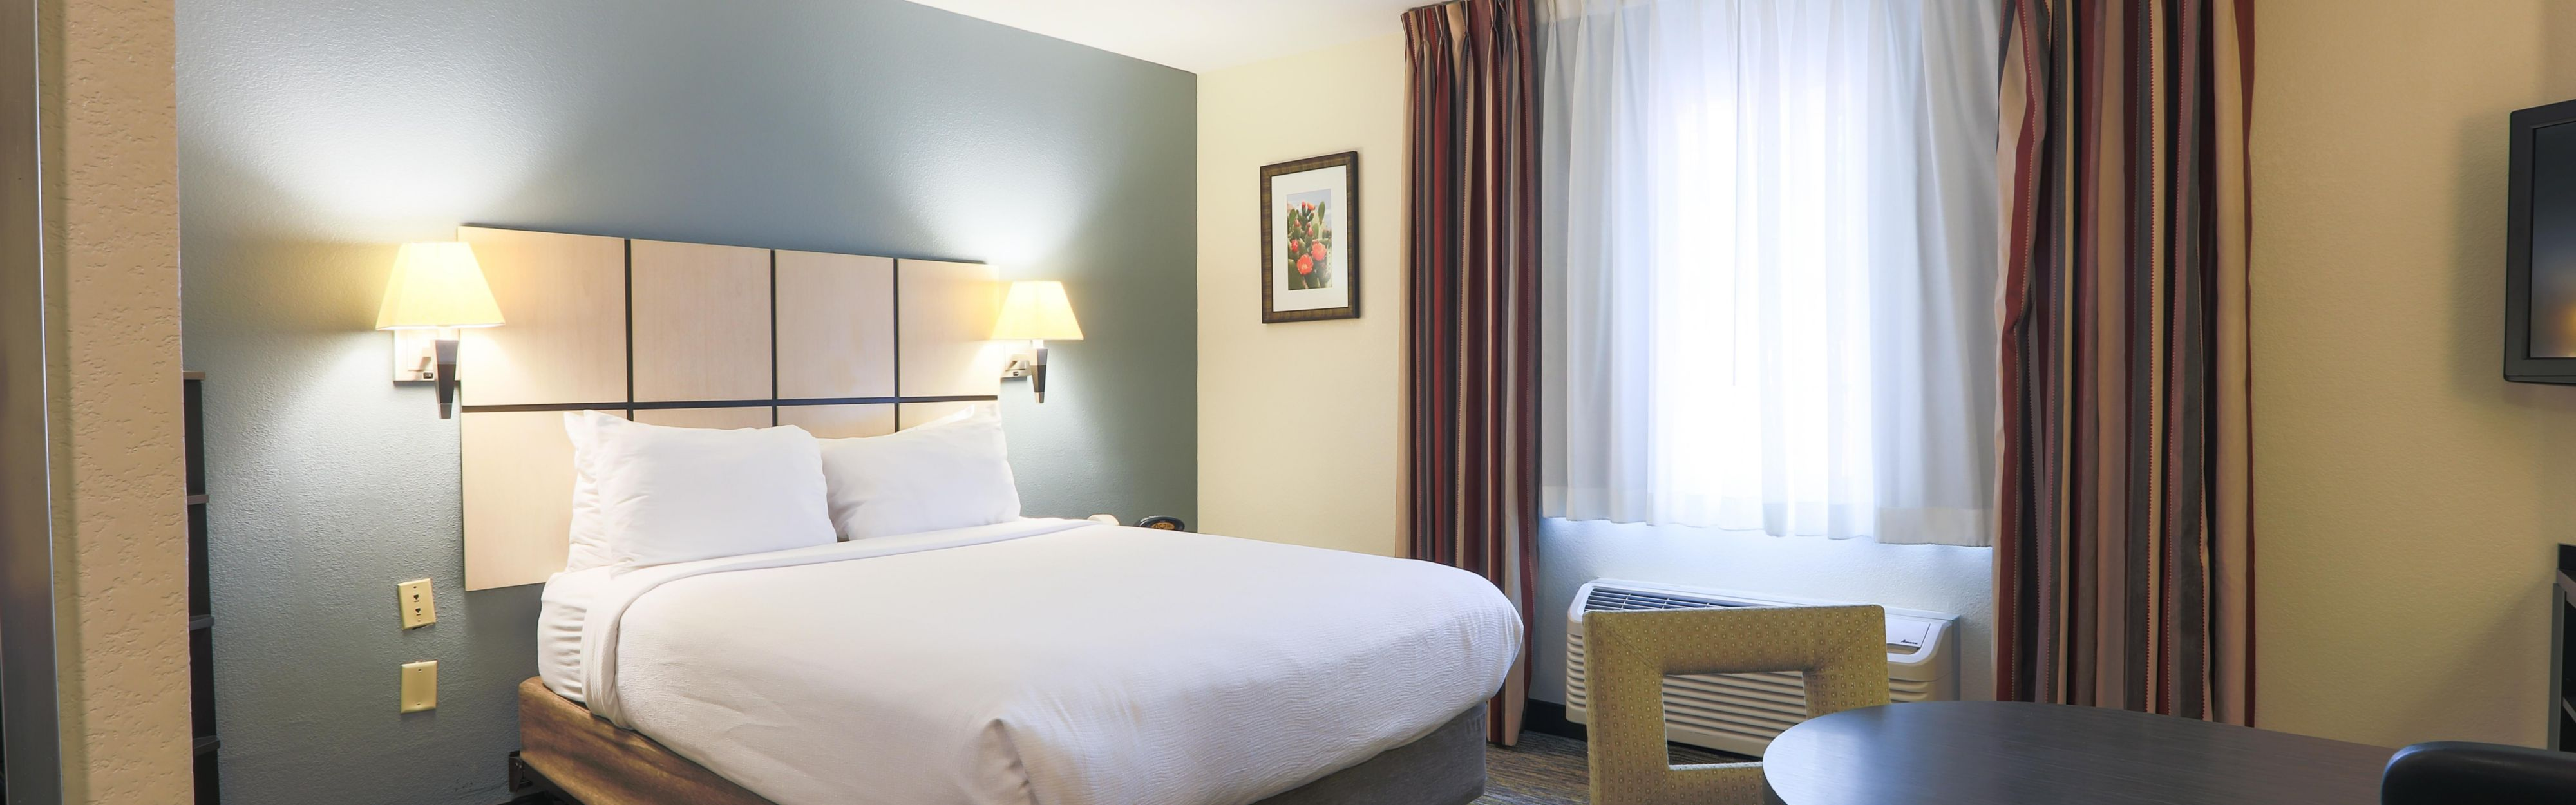 Candlewood Suites Austin-South image 1